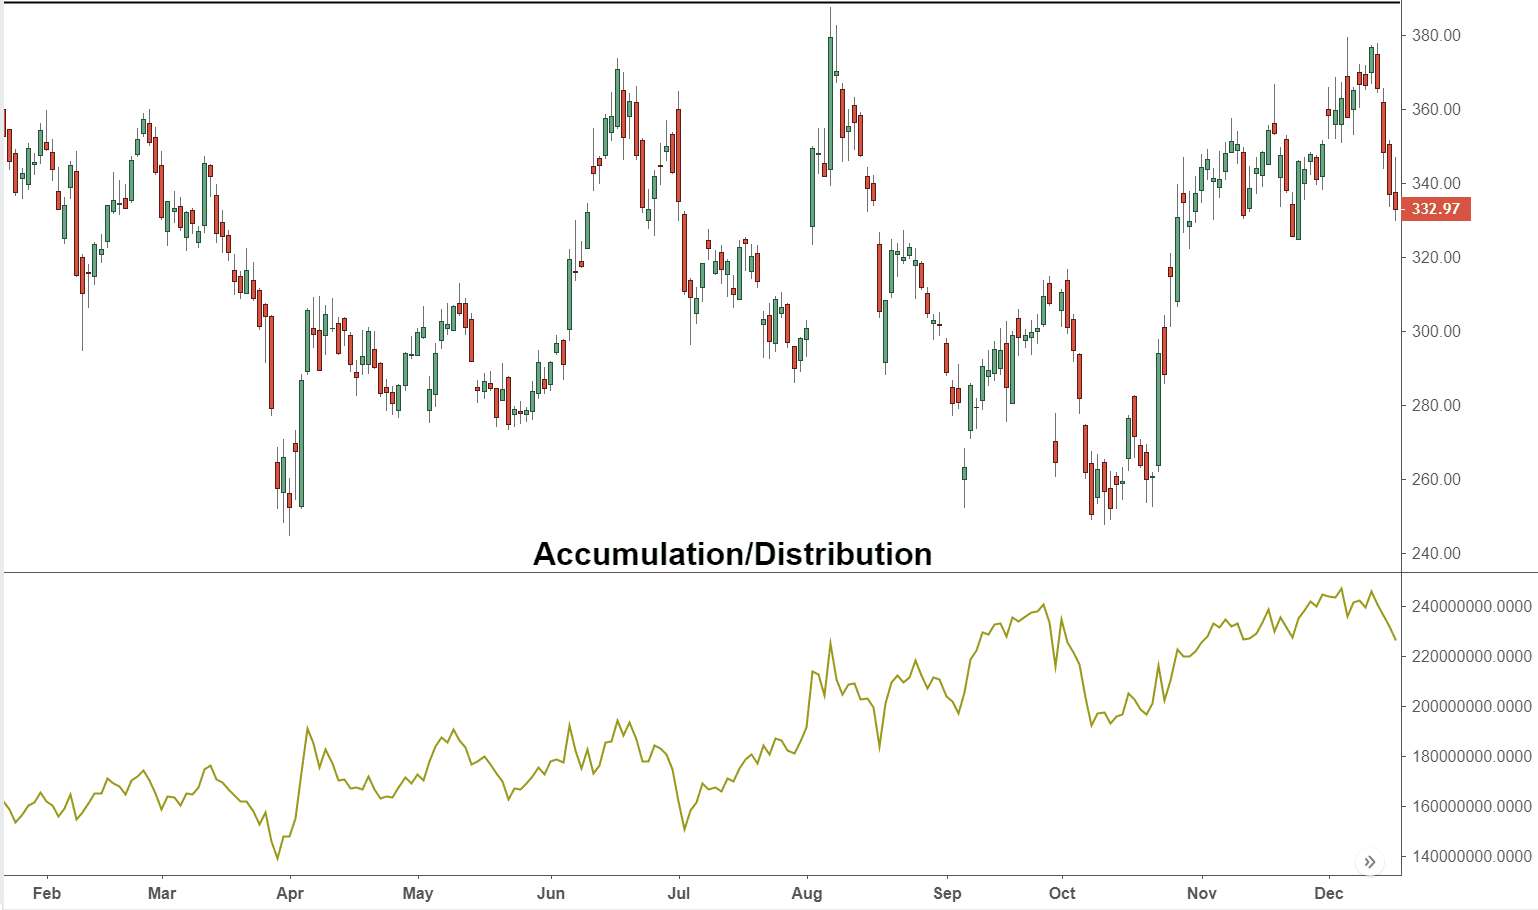 Accumulation/Distribution Indicator - A/D Definition and Uses